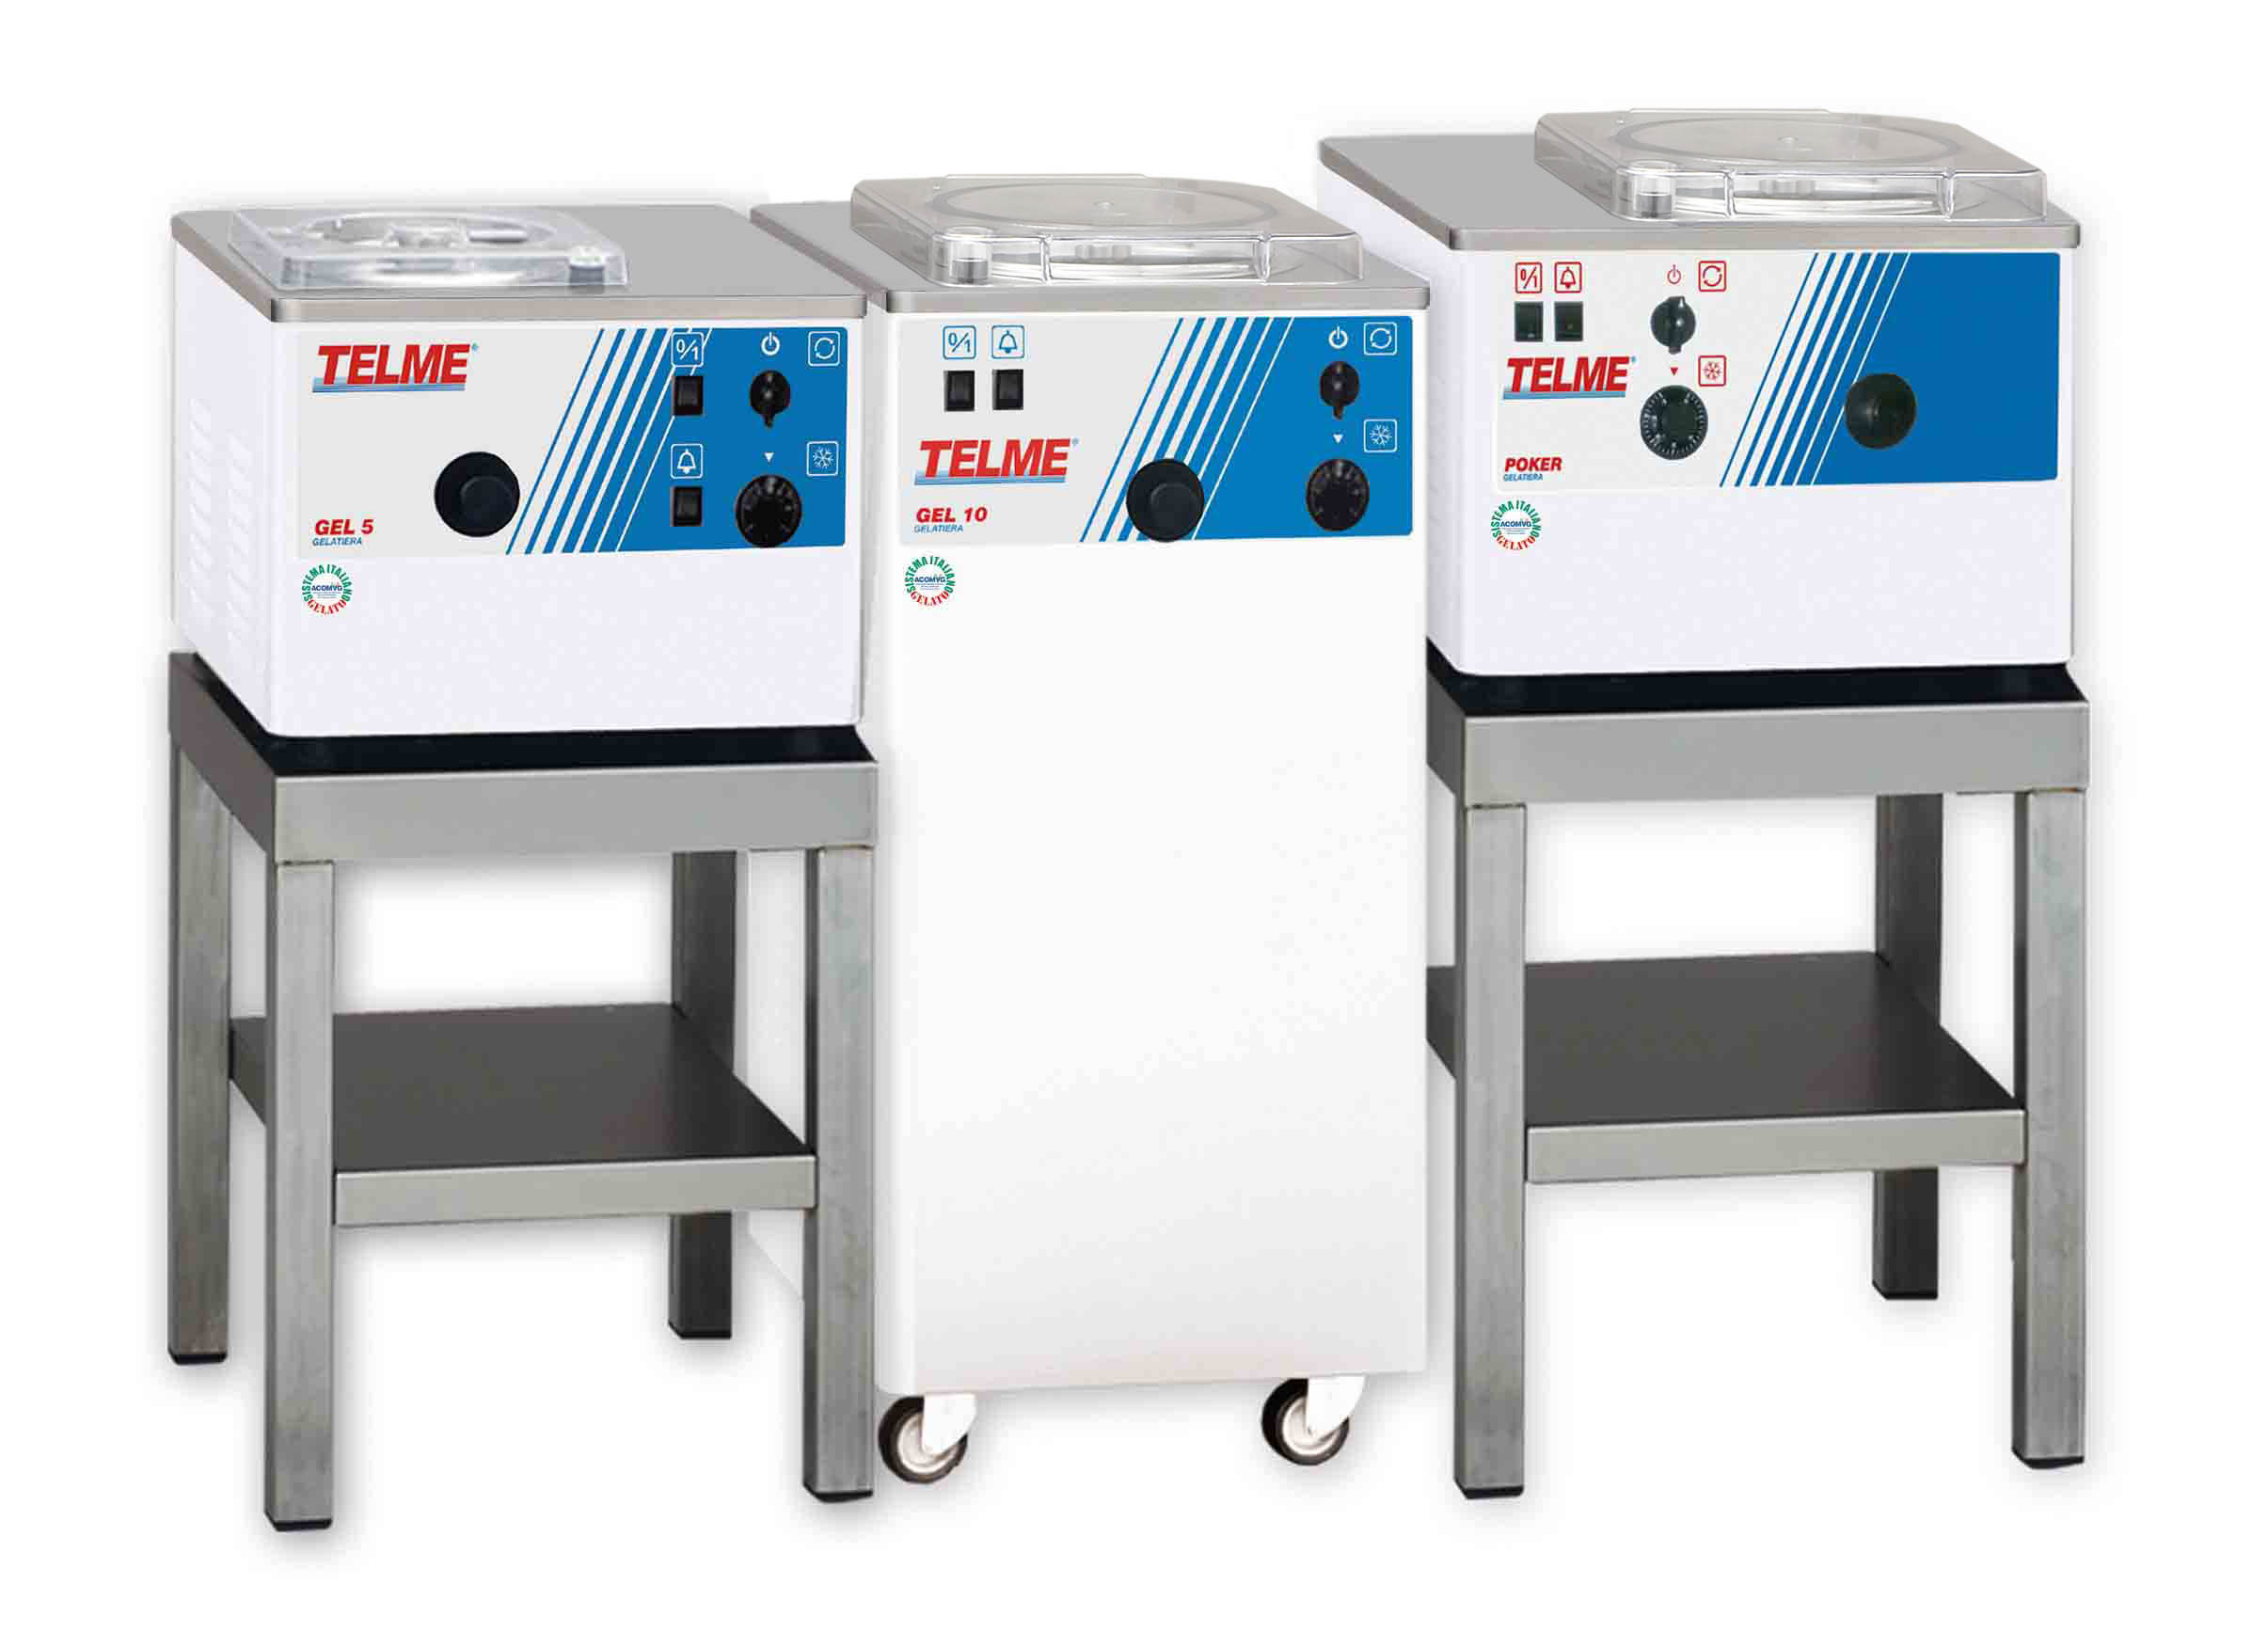 Gel 5, 10, - Poker   These combined ice cream and gelato machines with the two vertical cylinders allow one flavour to be mixed and heated at the same time as another one is mixed and frozen. They also prepare specific recipes for single flavours. Versatile and fast for any gelato requiring hot/cold thermal treatment.